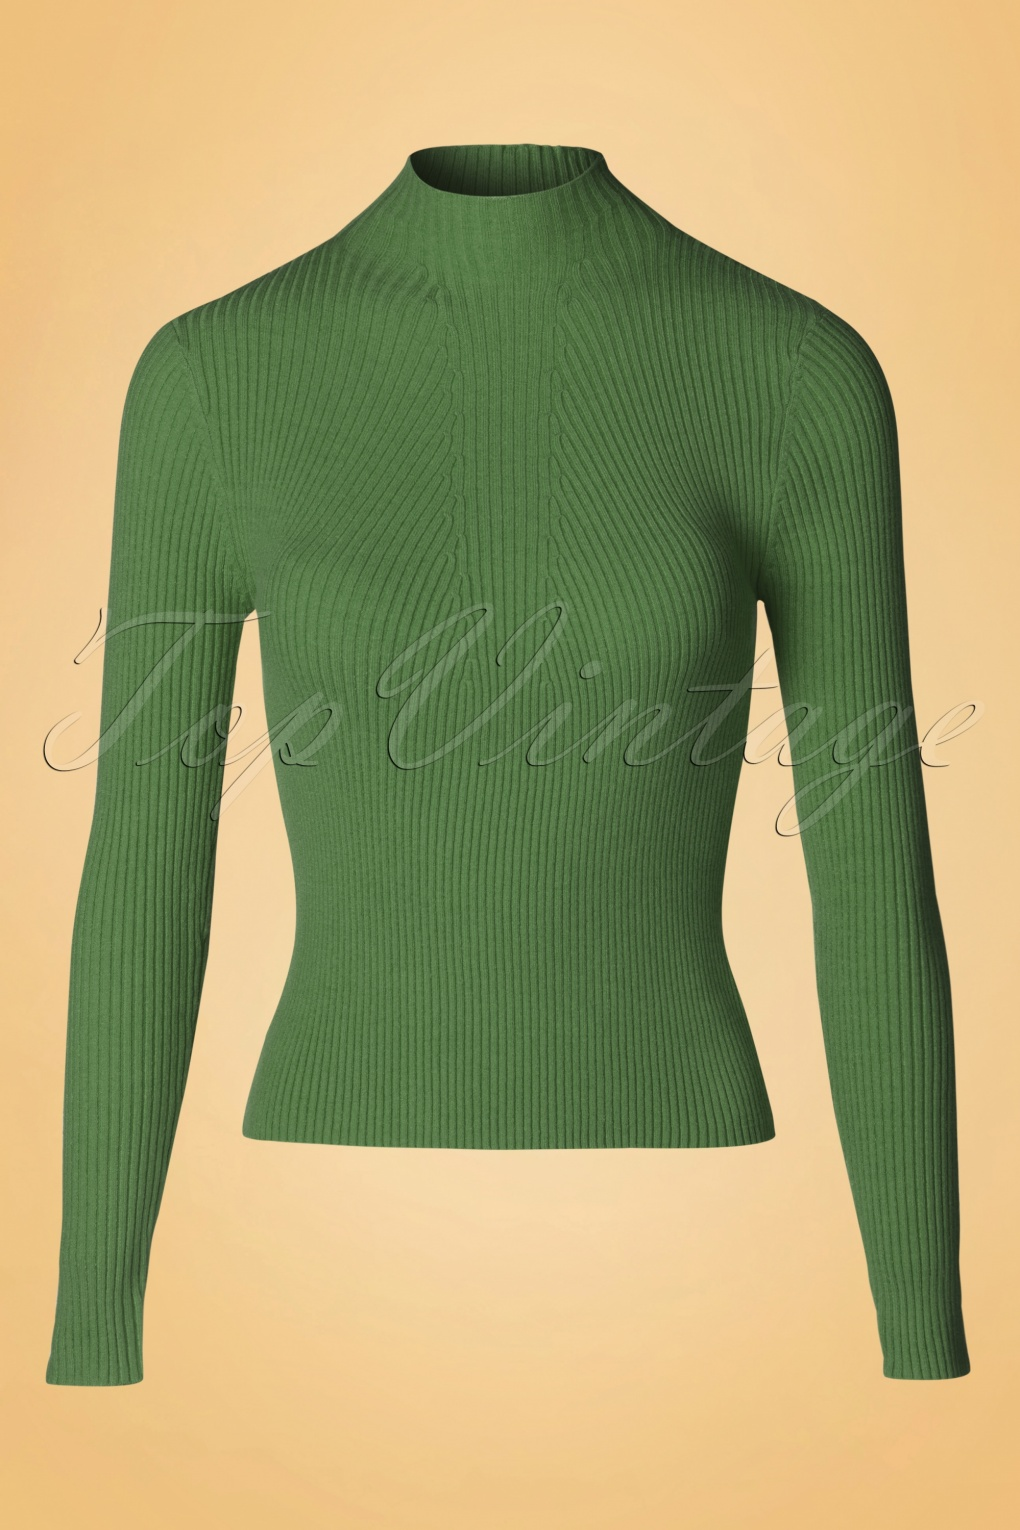 Retro Vintage Sweaters 50s Lets Tango Polo Neck in Olive £29.08 AT vintagedancer.com